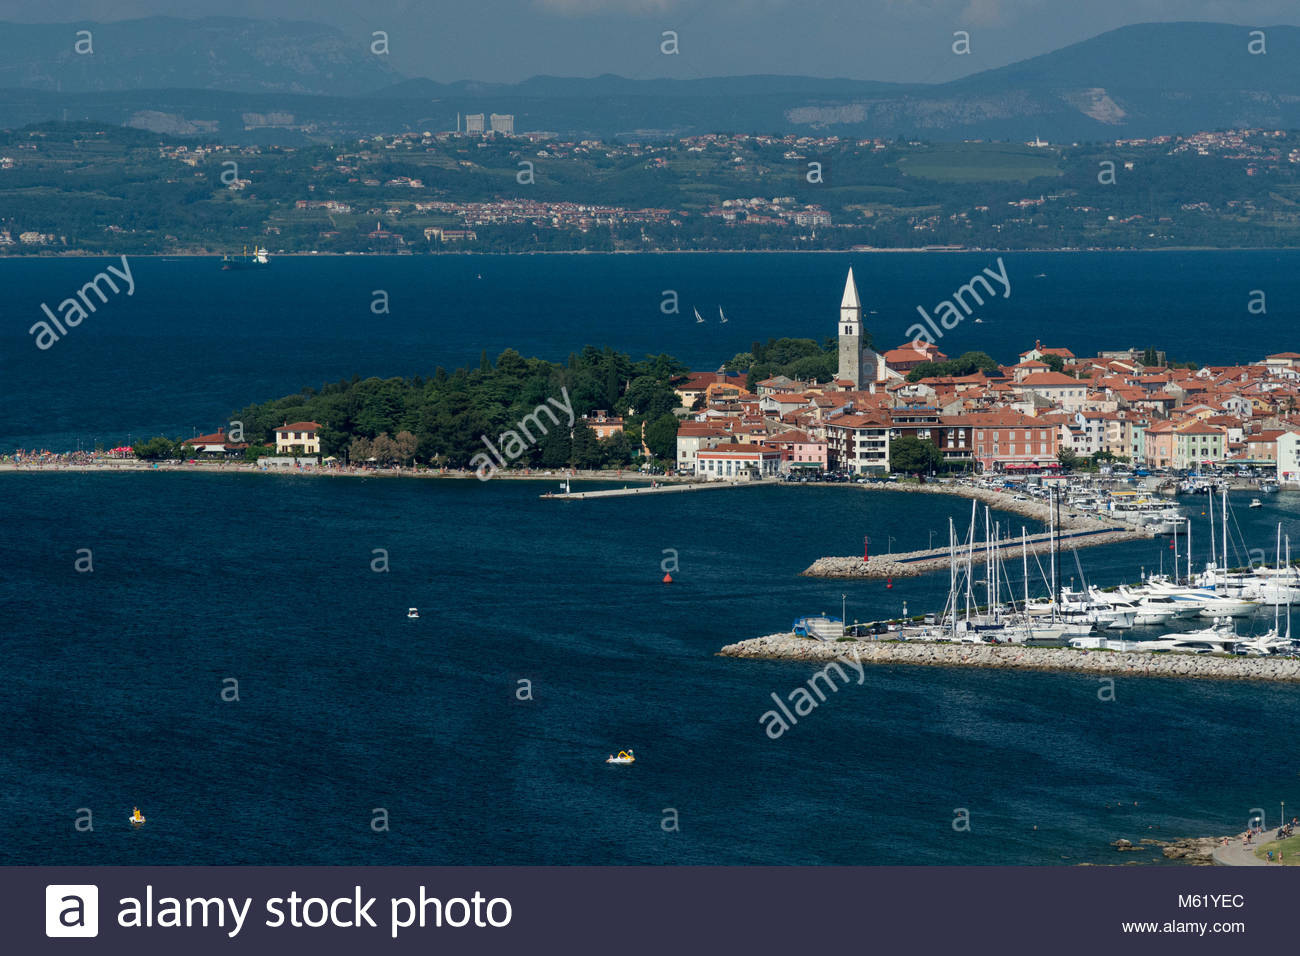 An elevated view of the town of Isola overlooking the Adriatic Sea. - Stock Image